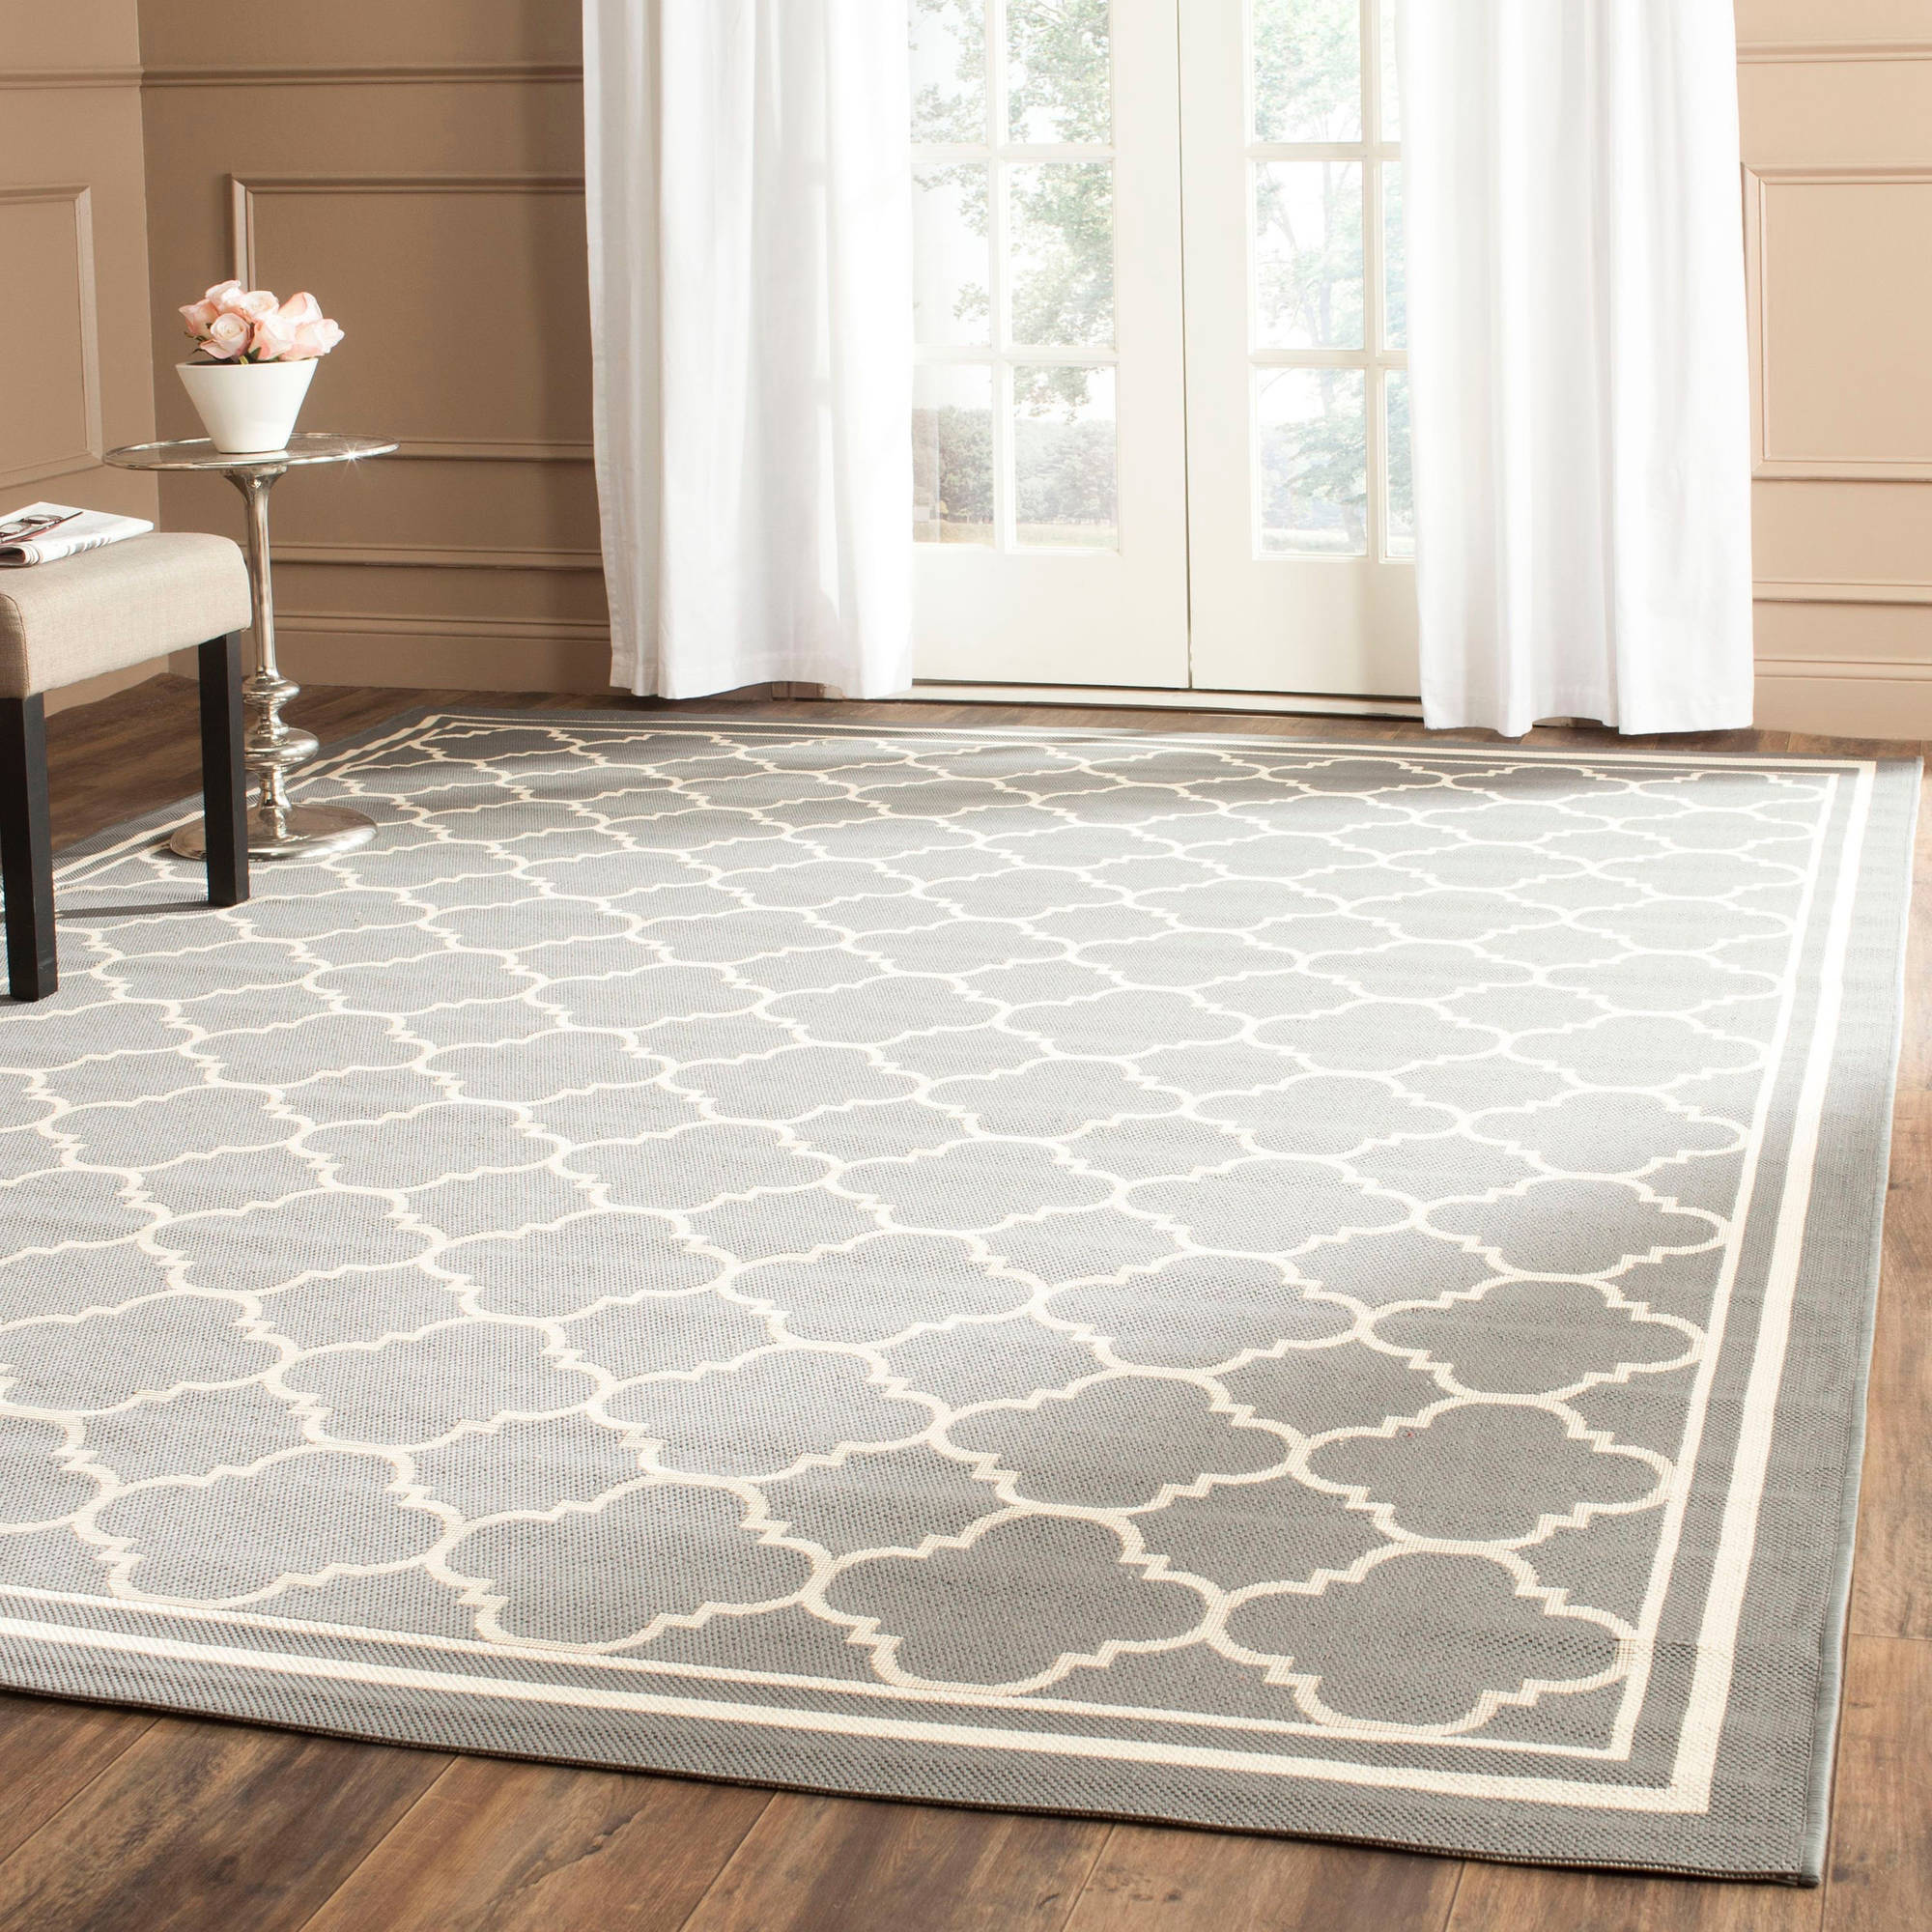 Safavieh Courtyard Alina Indoor/Outdoor Area Rug or Runner